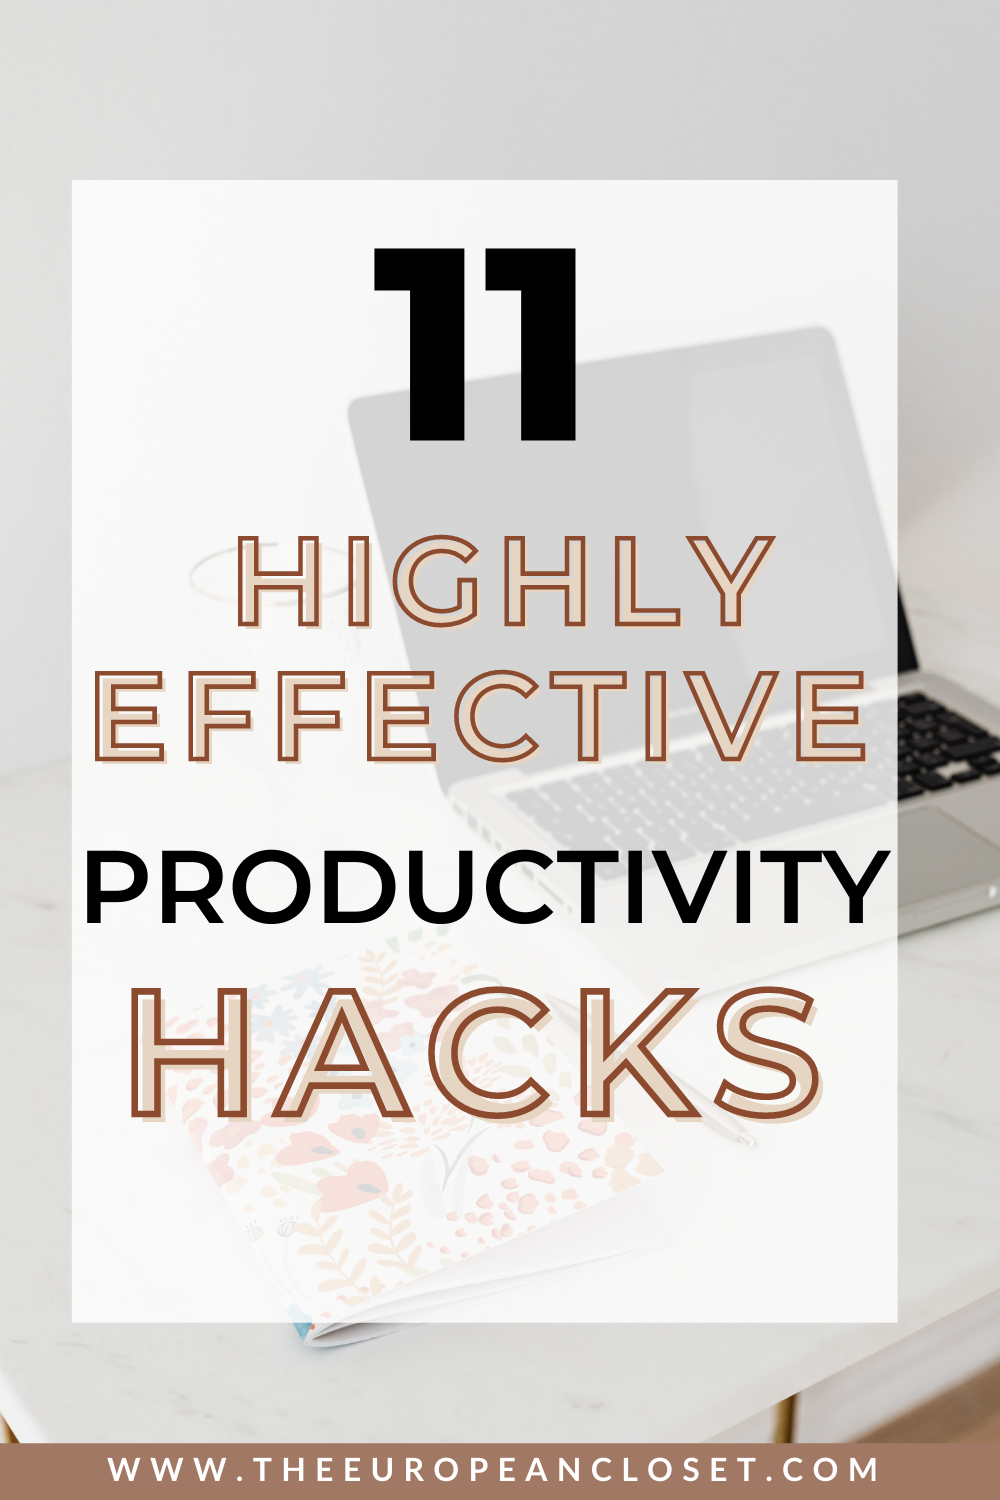 Today I've compileda list of simple things you can do on your daily life to make sure you can be as productive as possible.